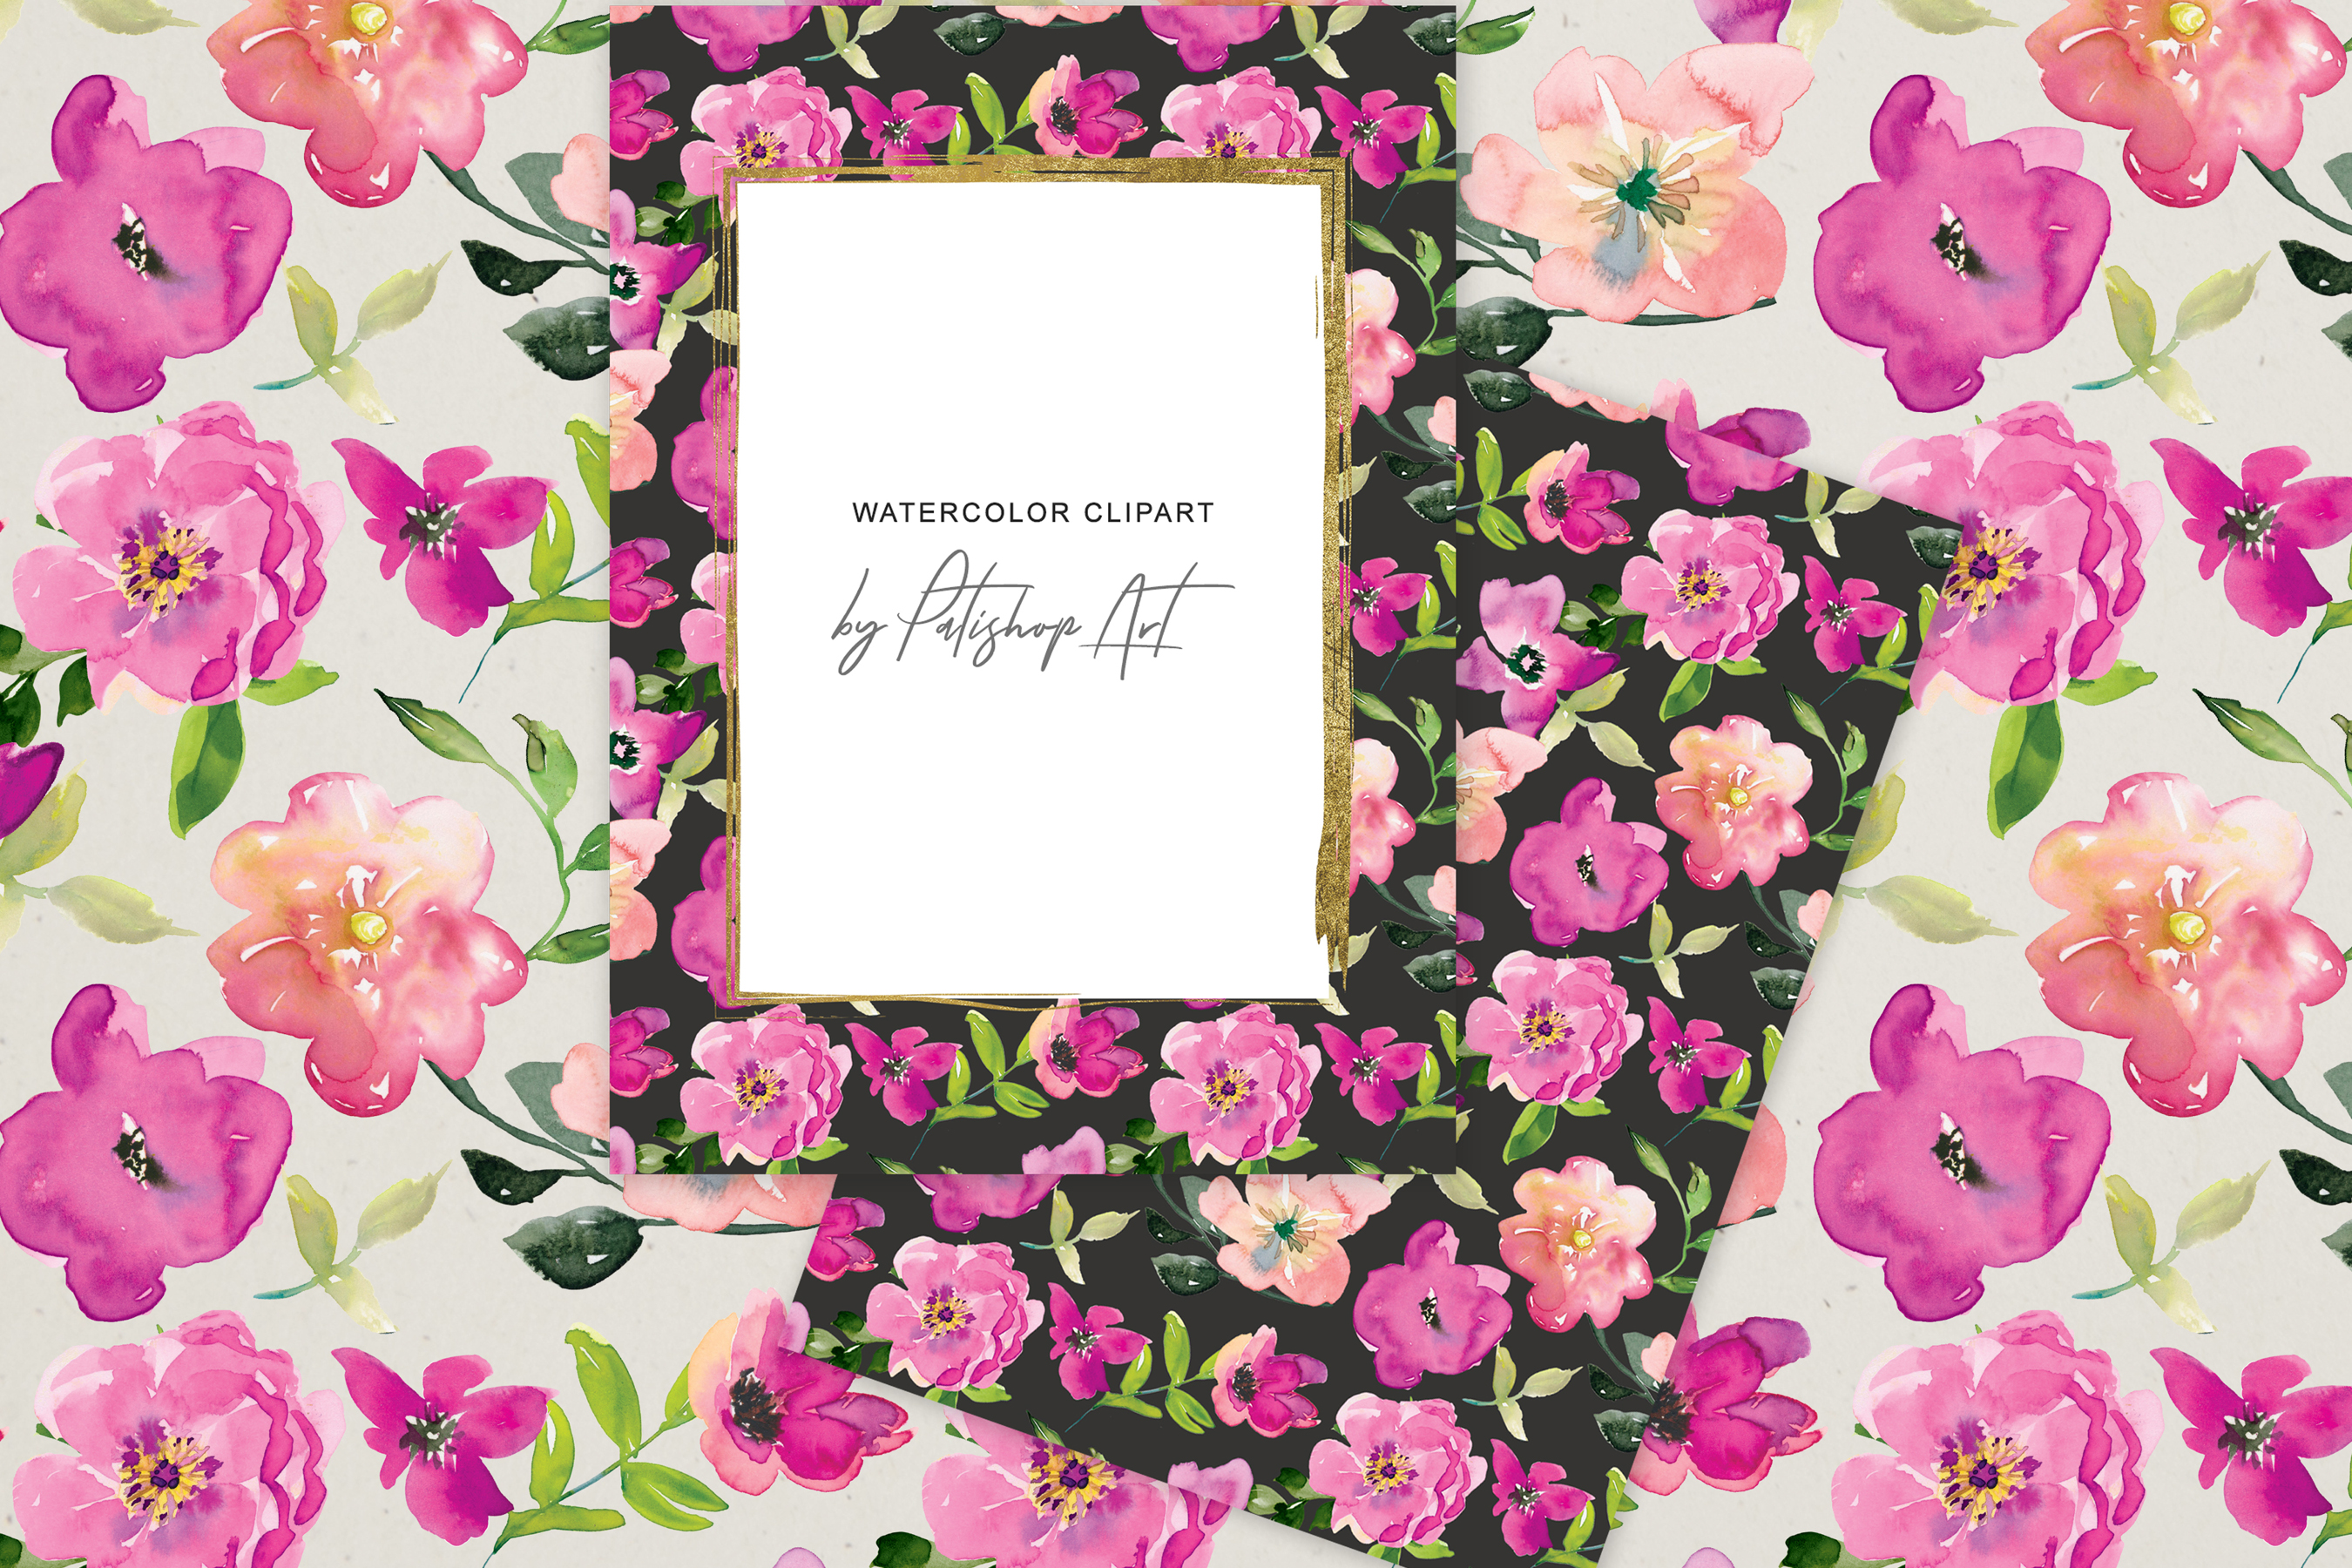 Watercolor Magenta and Blush Floral Bouquet Clipart example image 8